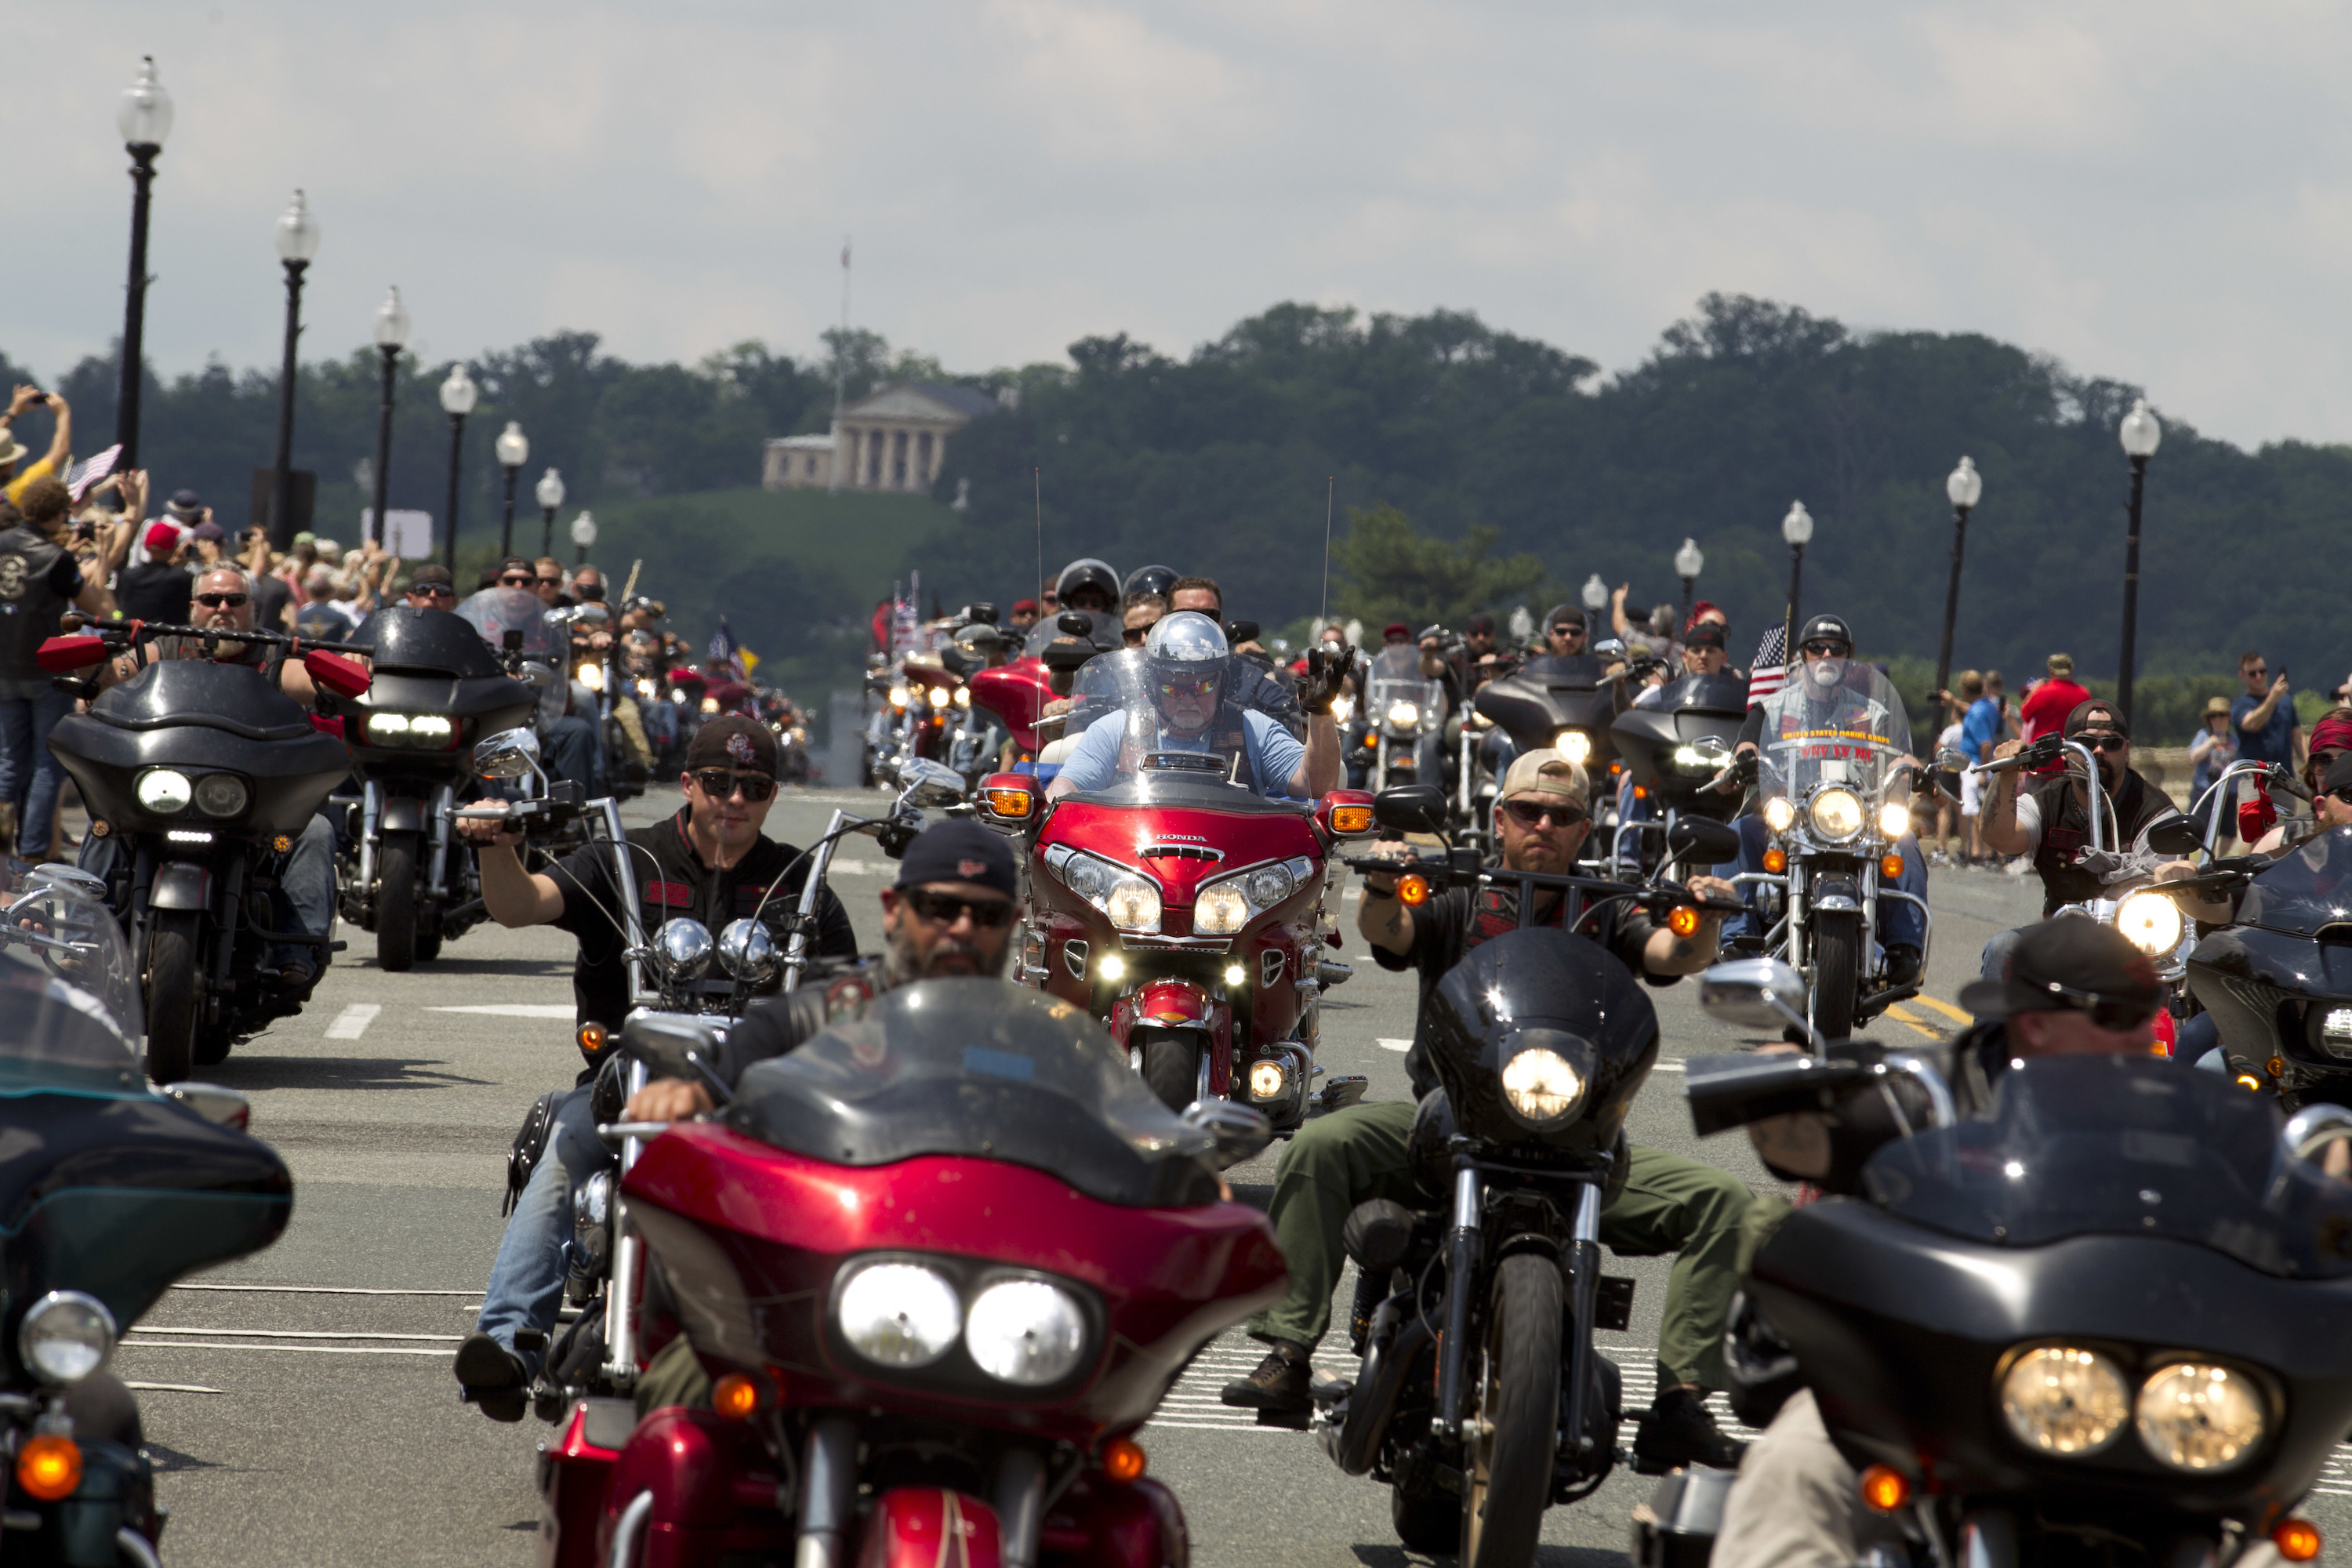 Rolling Thunder Motorcyclists Converge On Washington For The Last